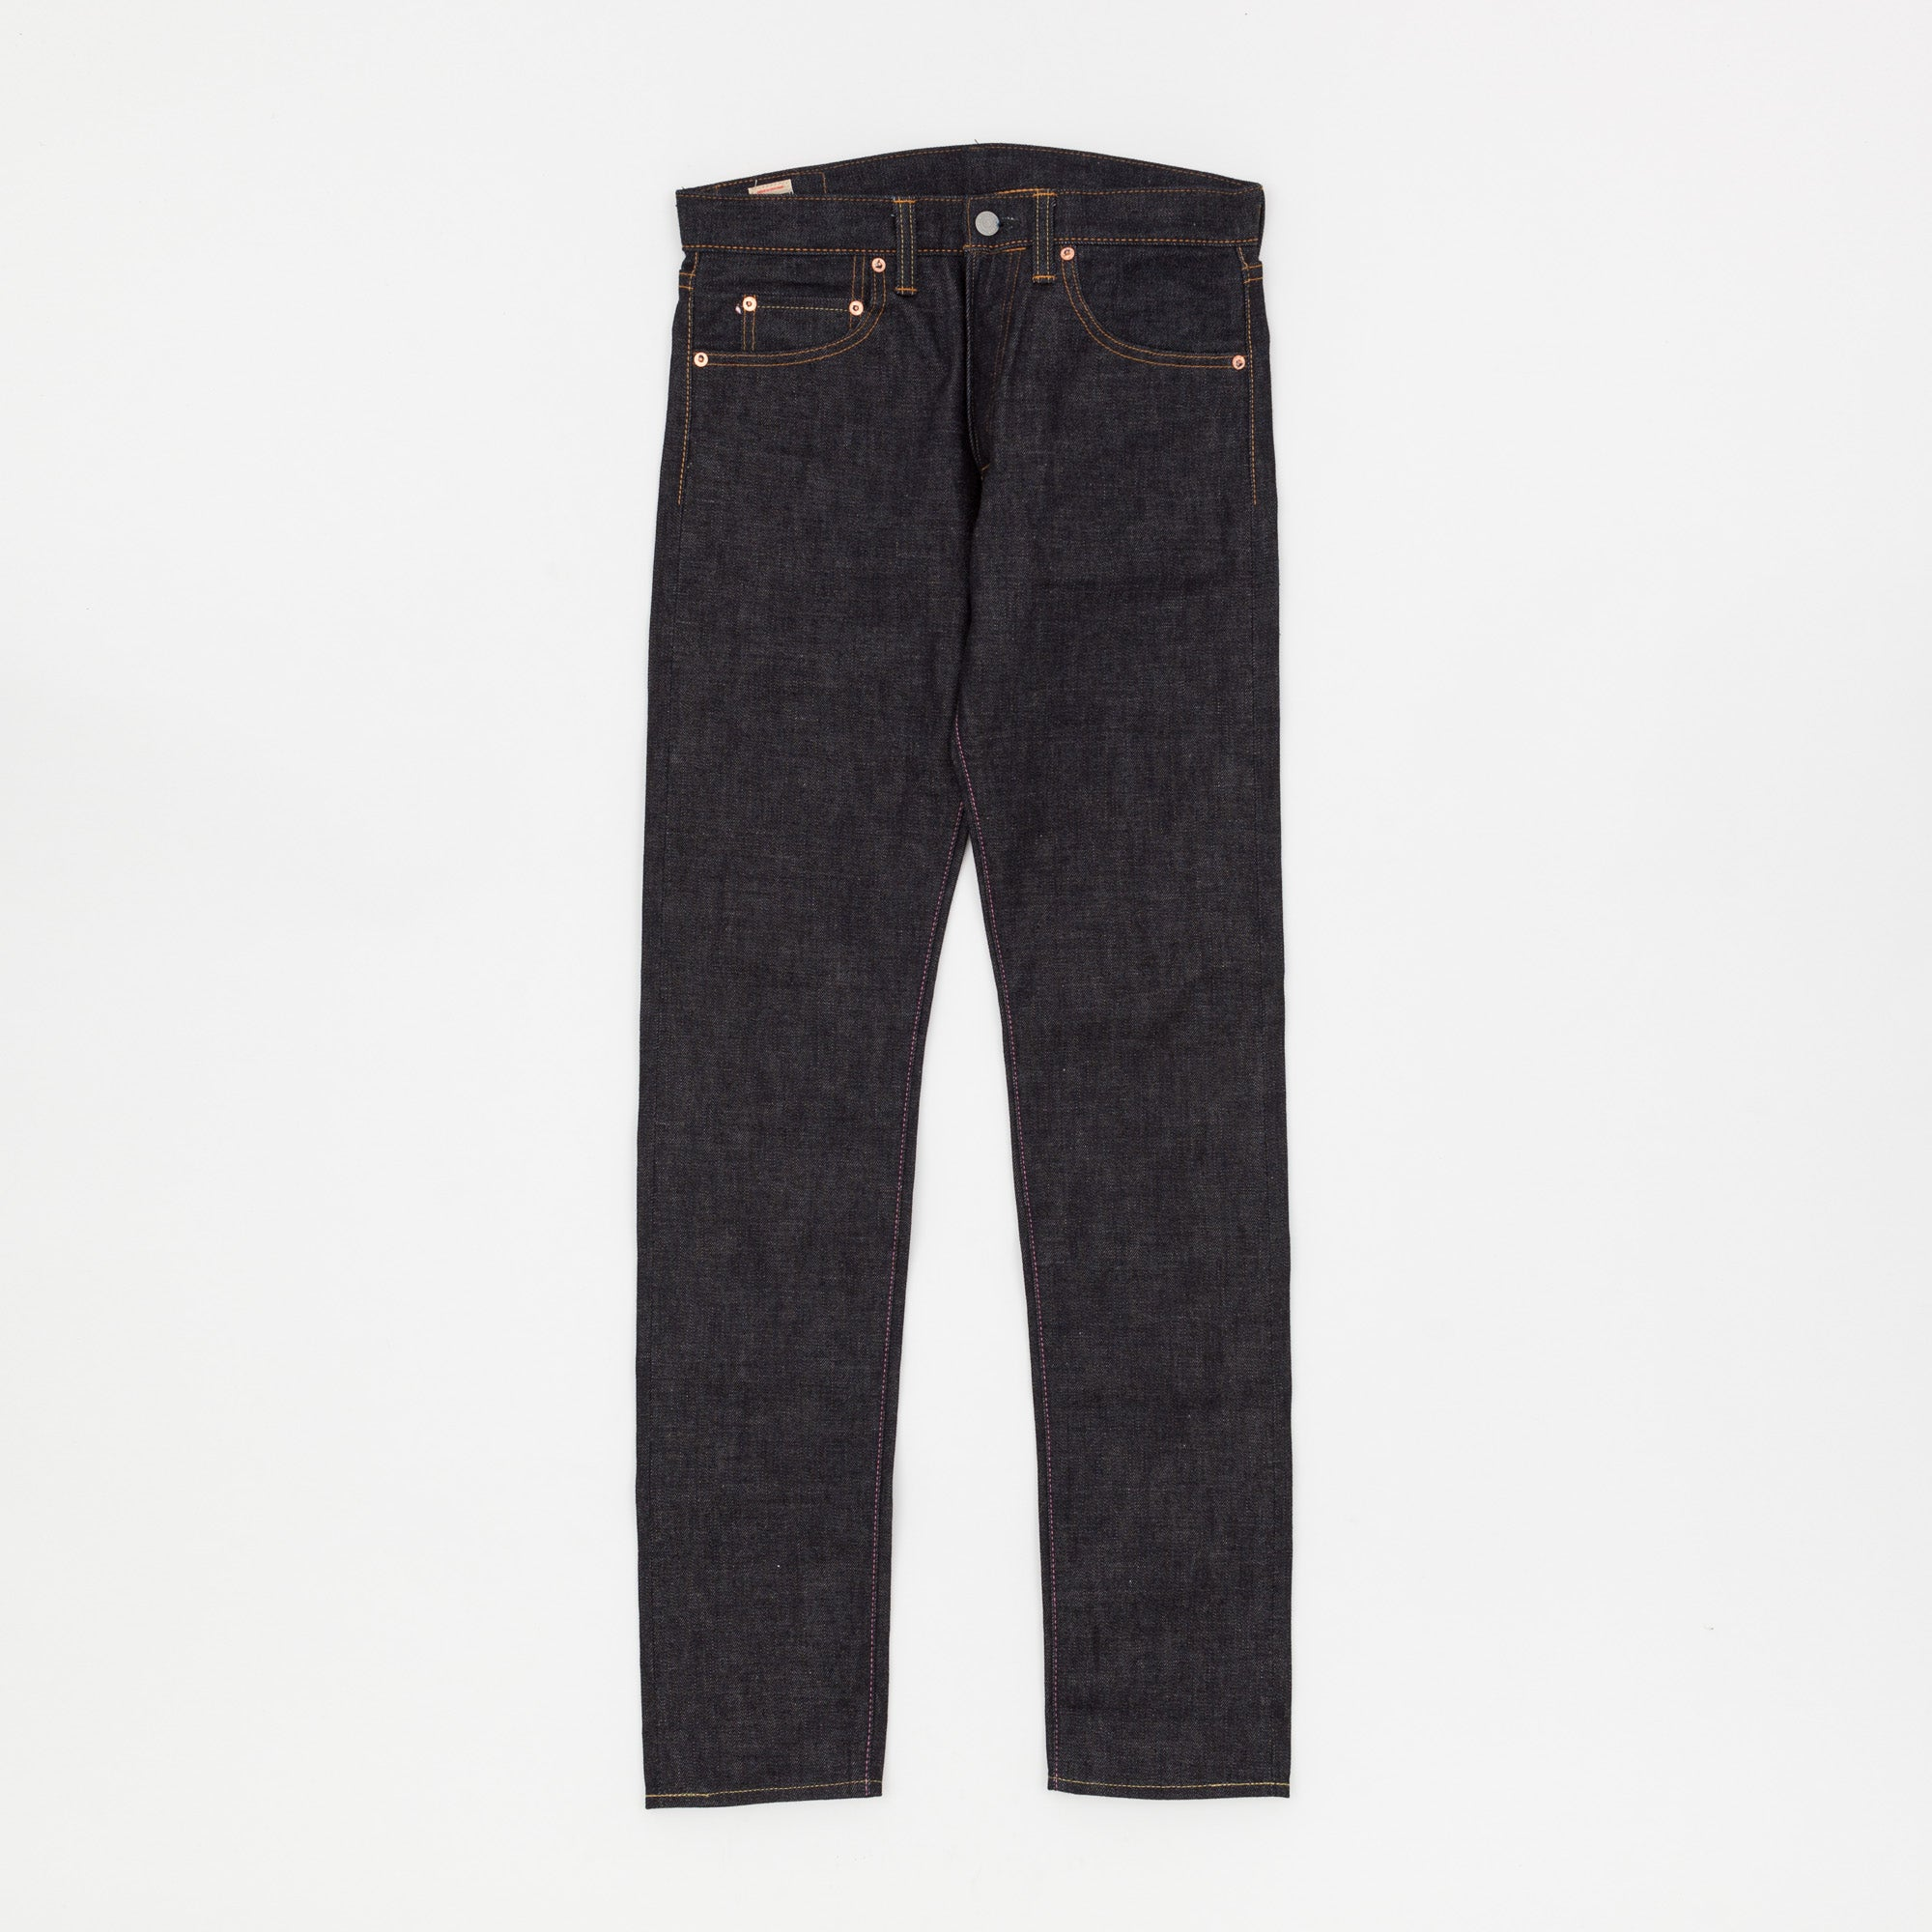 0306-SP Battle Stripes 15.7oz Selvedge Denim